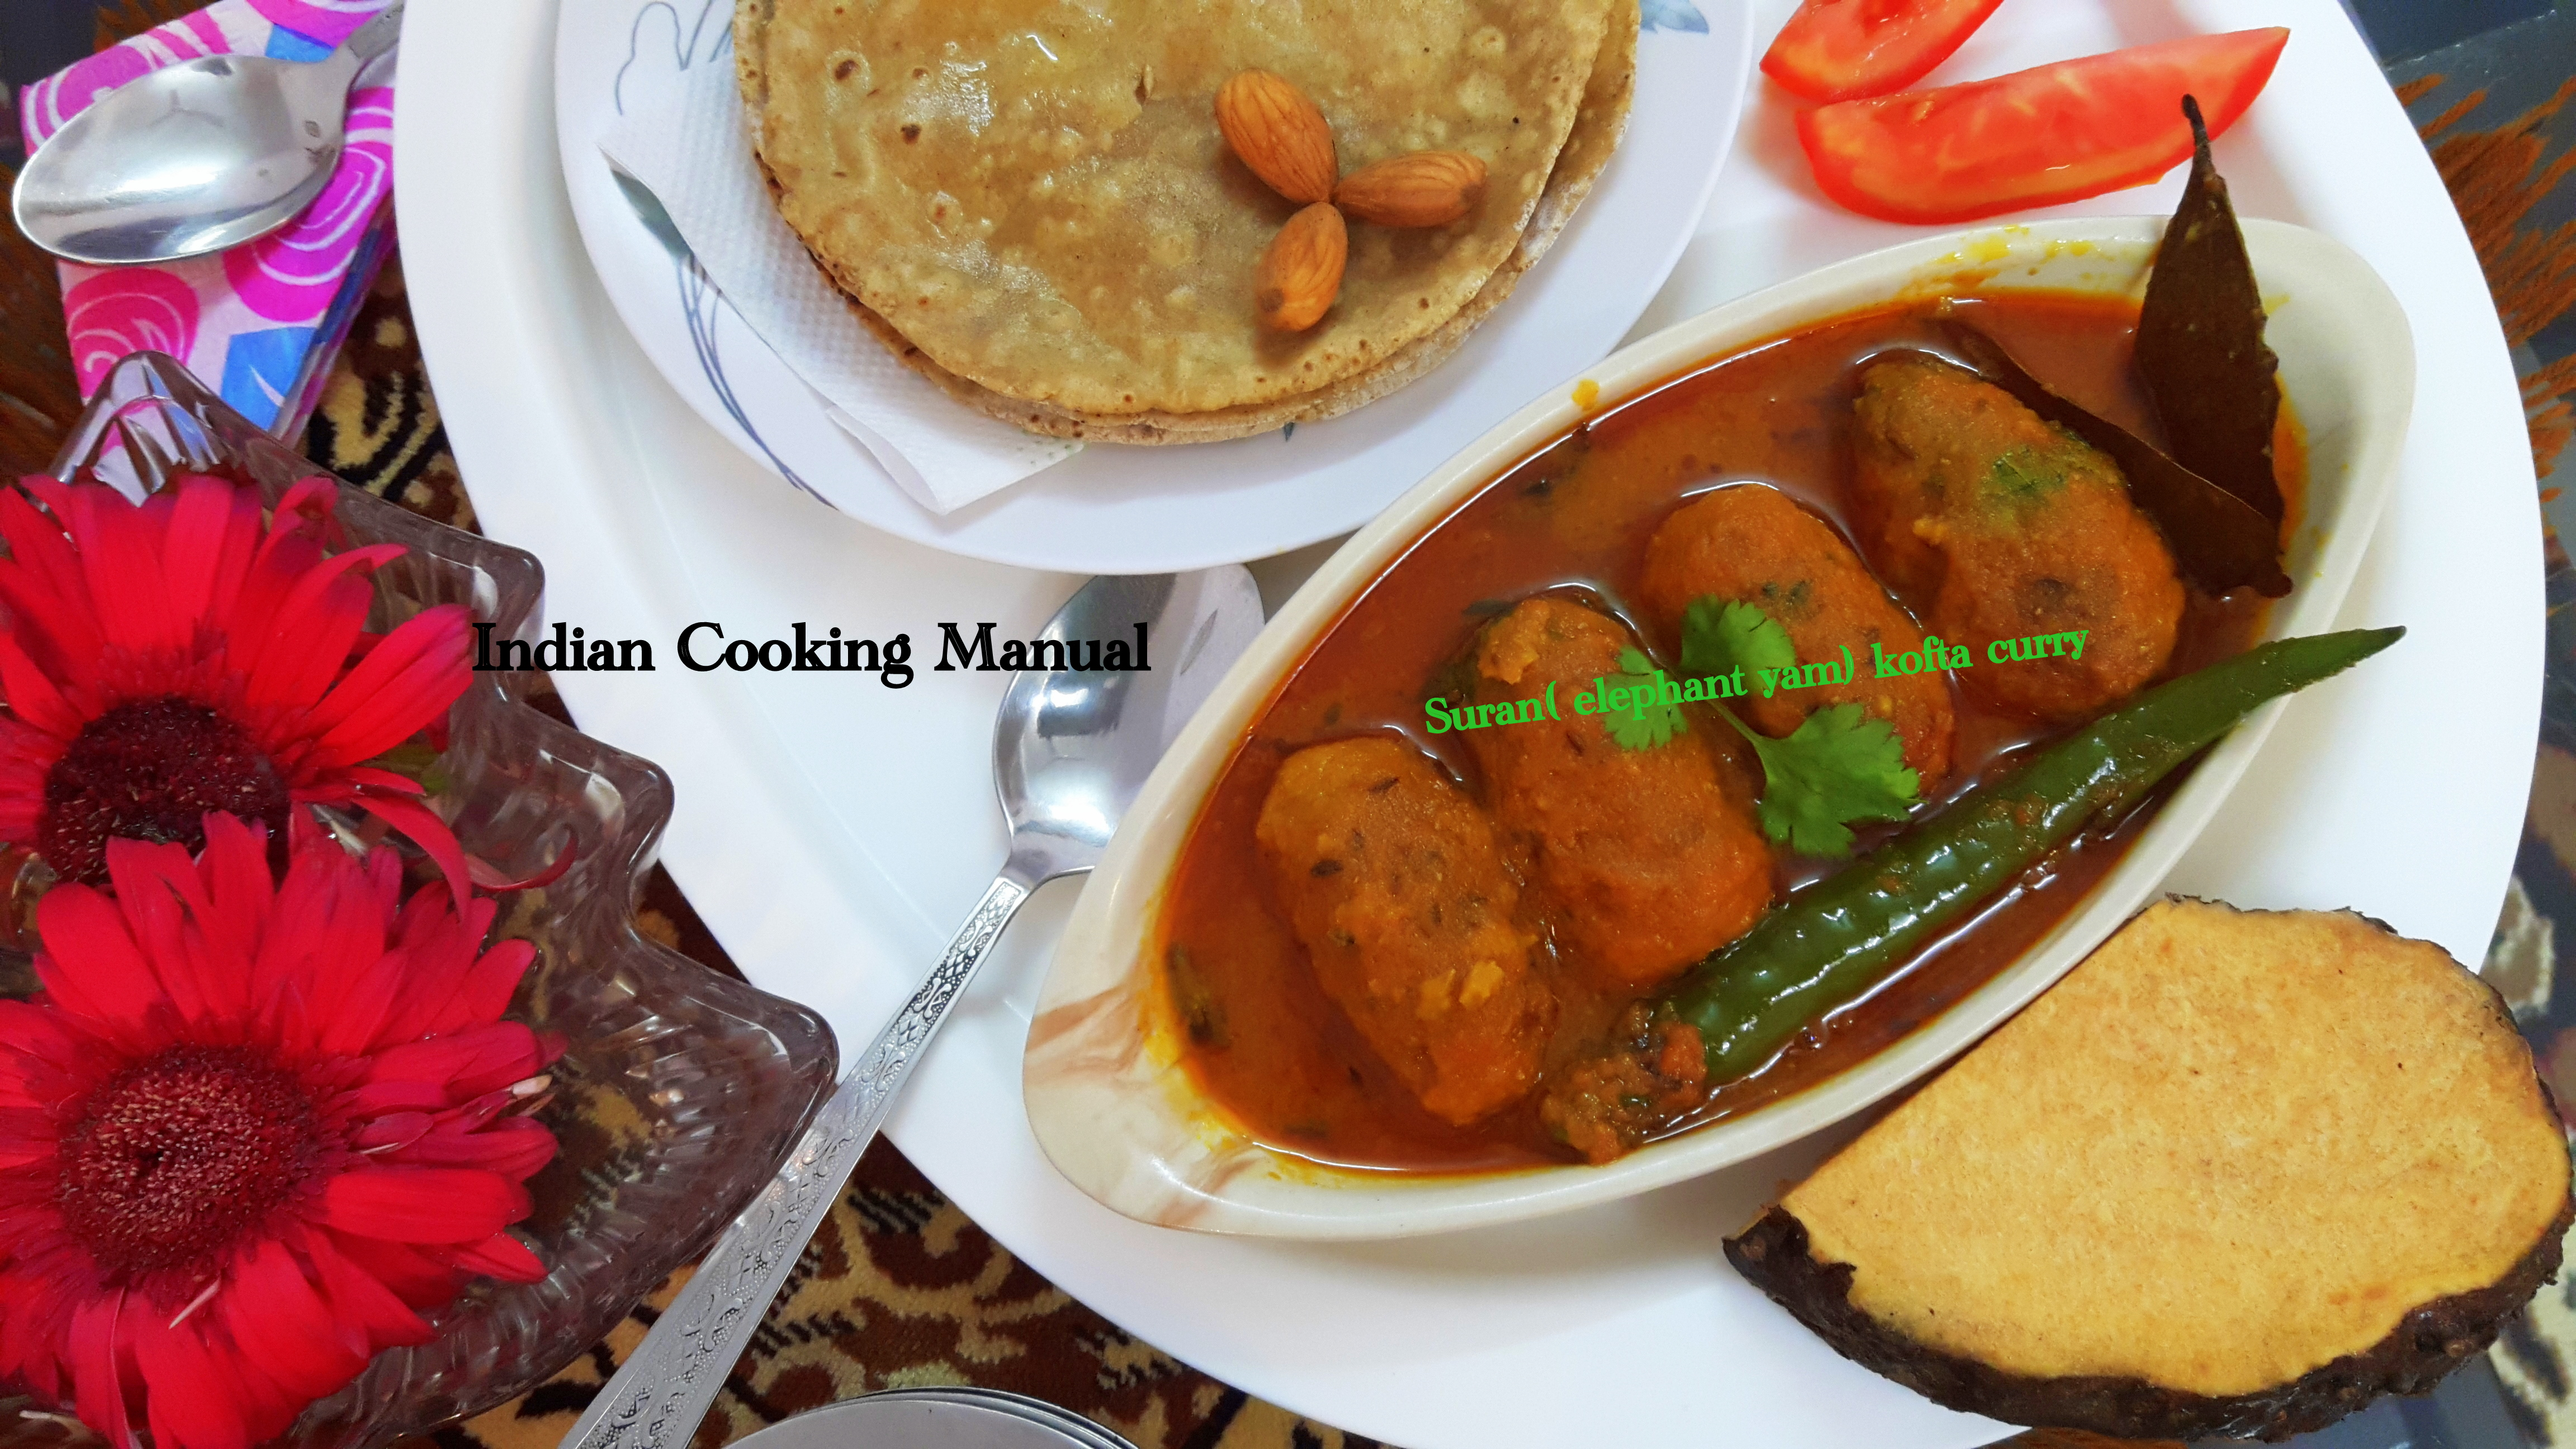 Suran (elephant yam) kofta curry